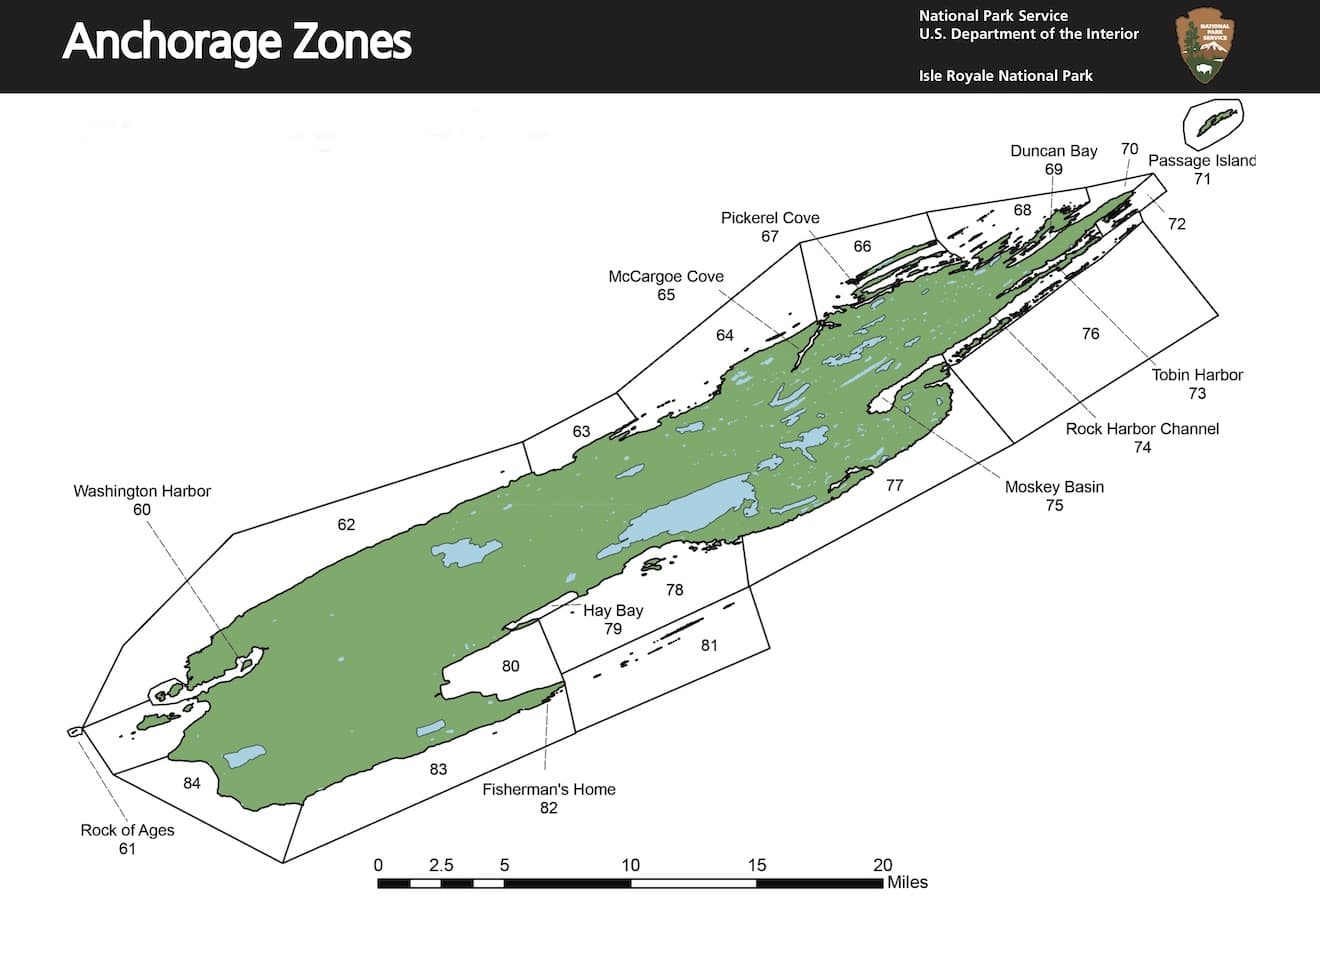 Preview image for Anchorage Zones resource